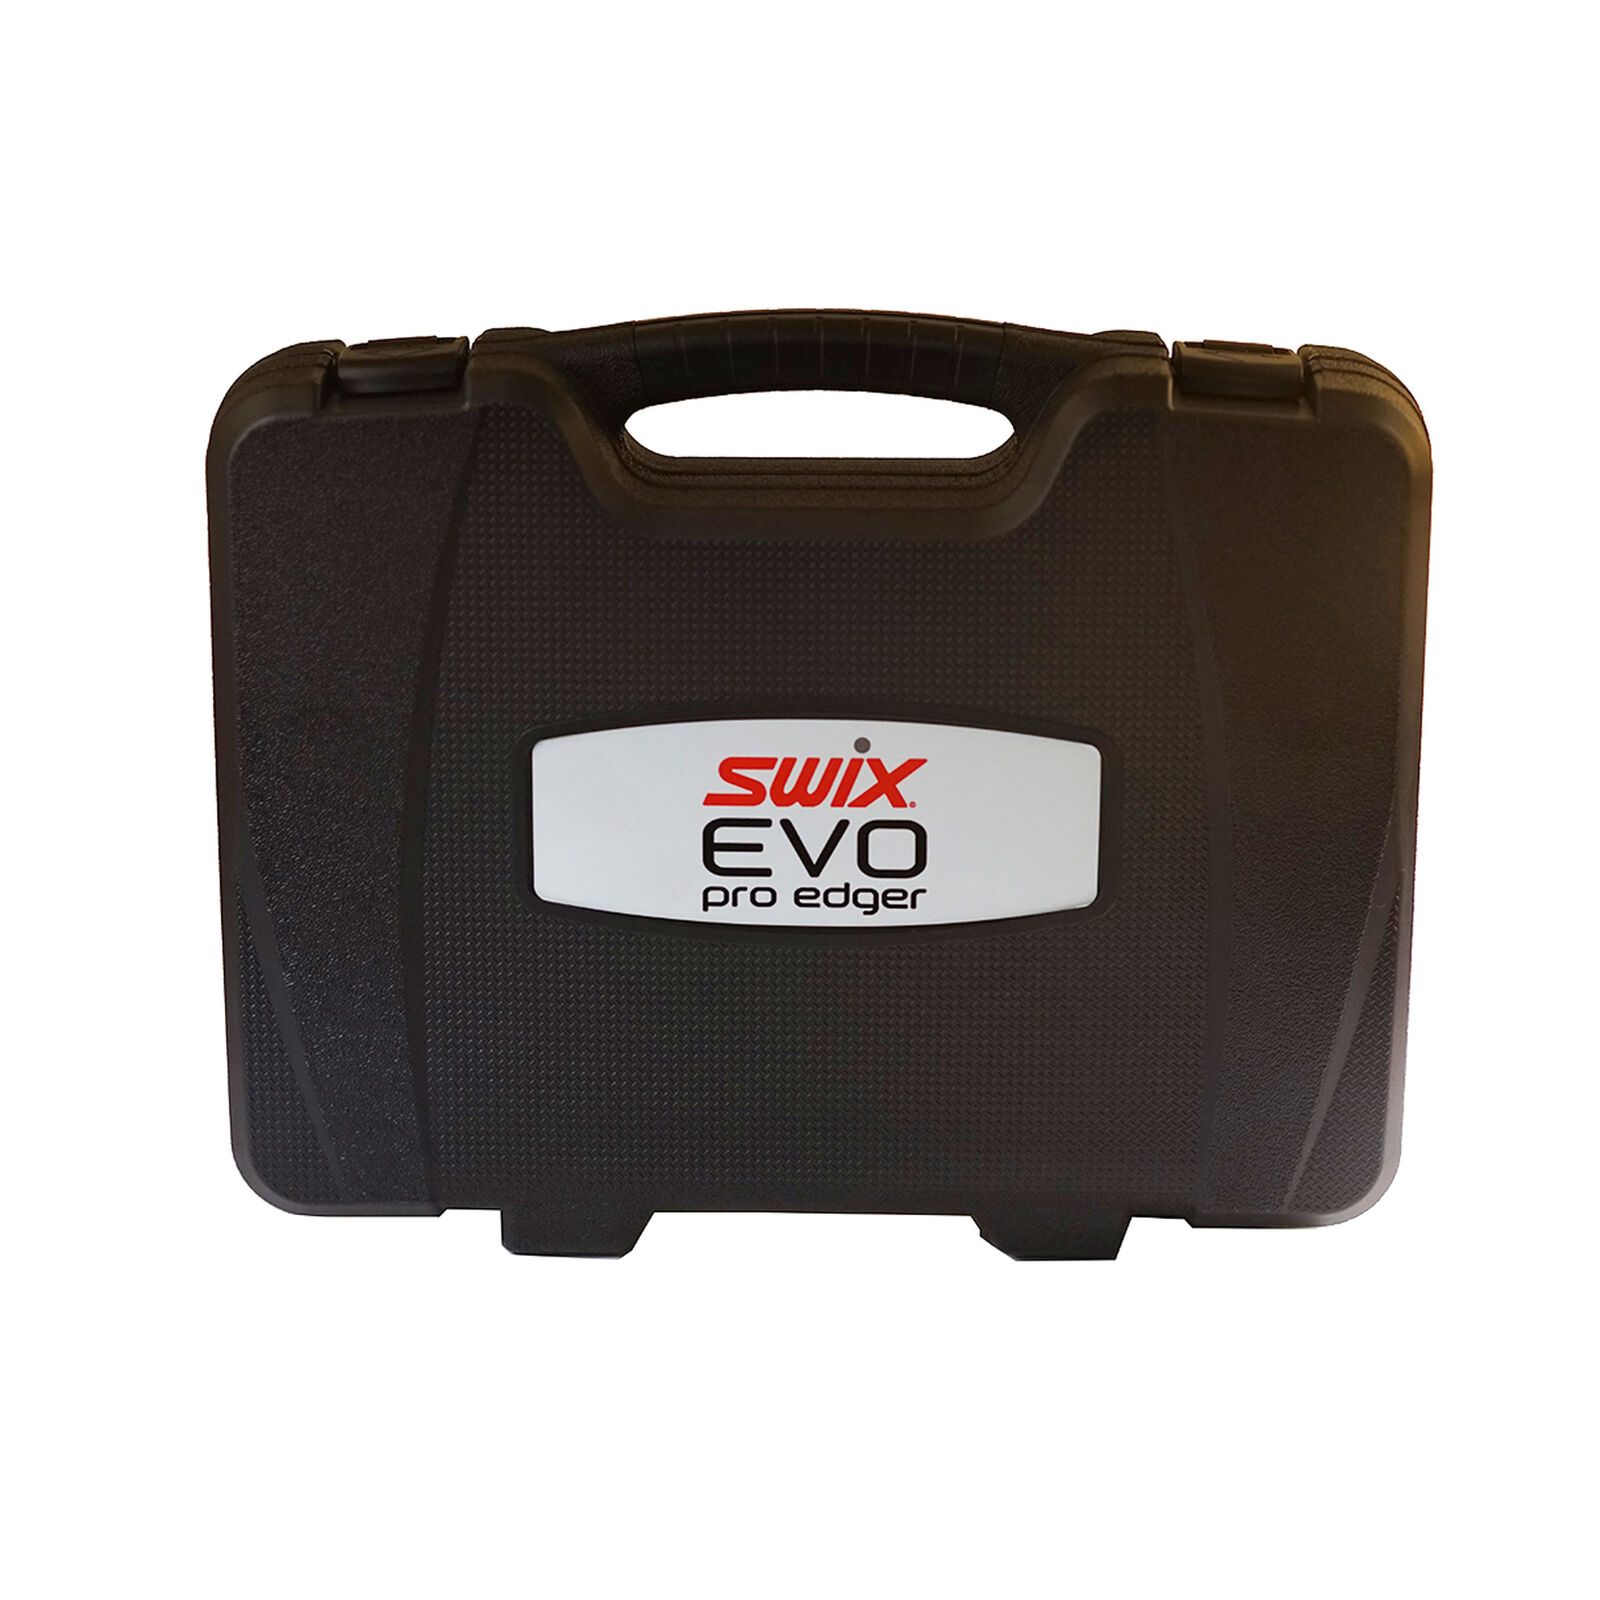 Swix Hard Shell Case for EVO Pro Edger Case Only Empty